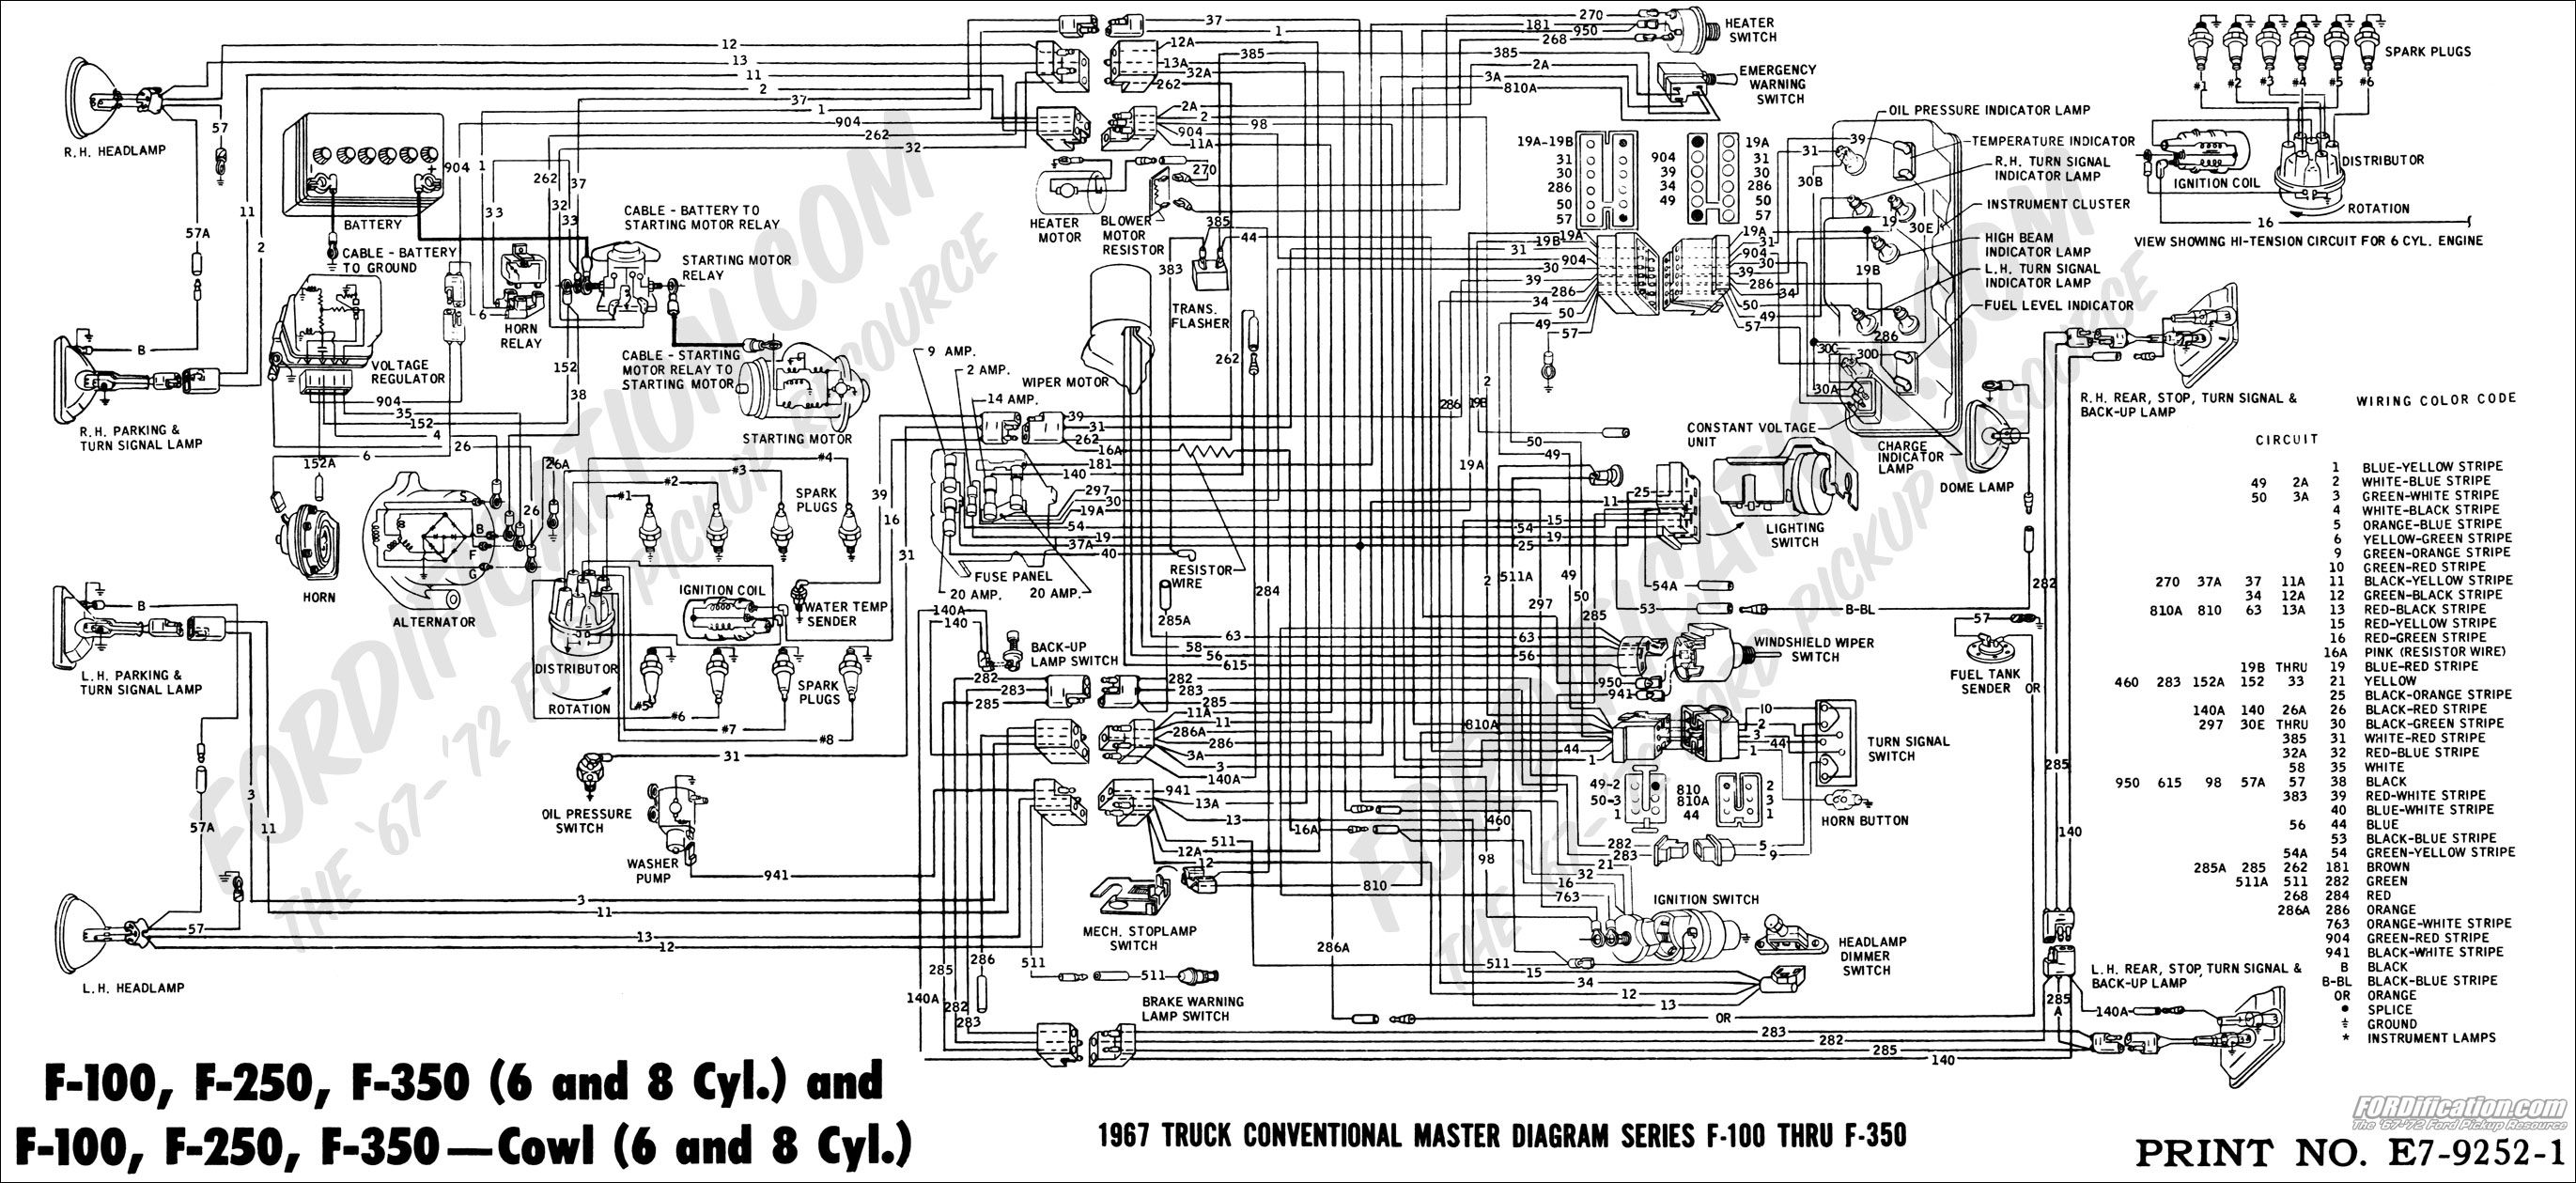 8e608320d8e6c71ff5bbdb2efdd7ada1 ford truck technical drawings and schematics section h wiring 1966 ford truck wiring harness at creativeand.co